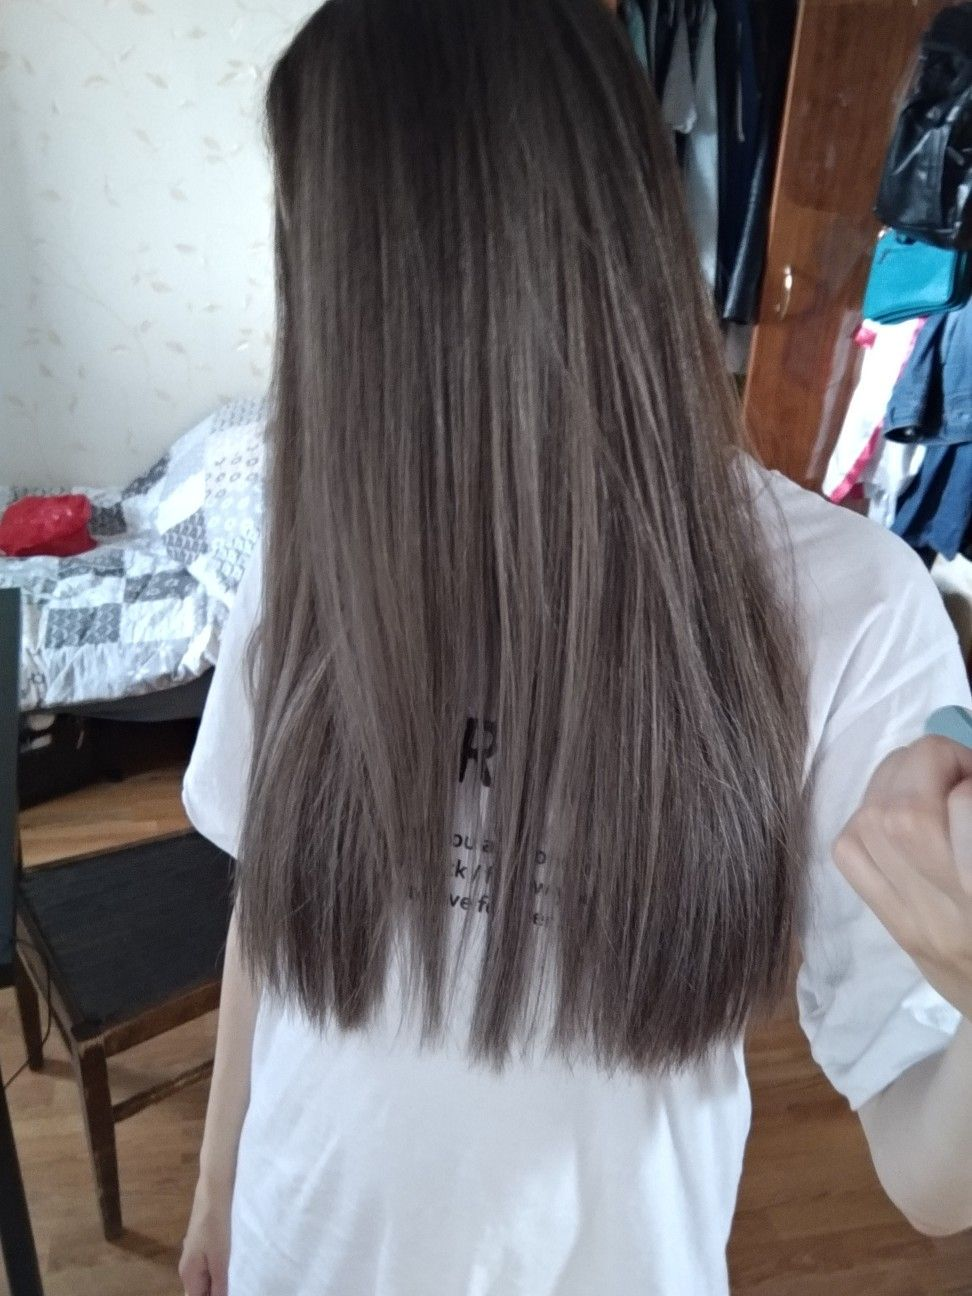 Black Hairstyles Shag Hairstyles Haircuts For Naturally Straight Hair Thick Hair Styles Brown Hair Balayage Straight Hairstyles